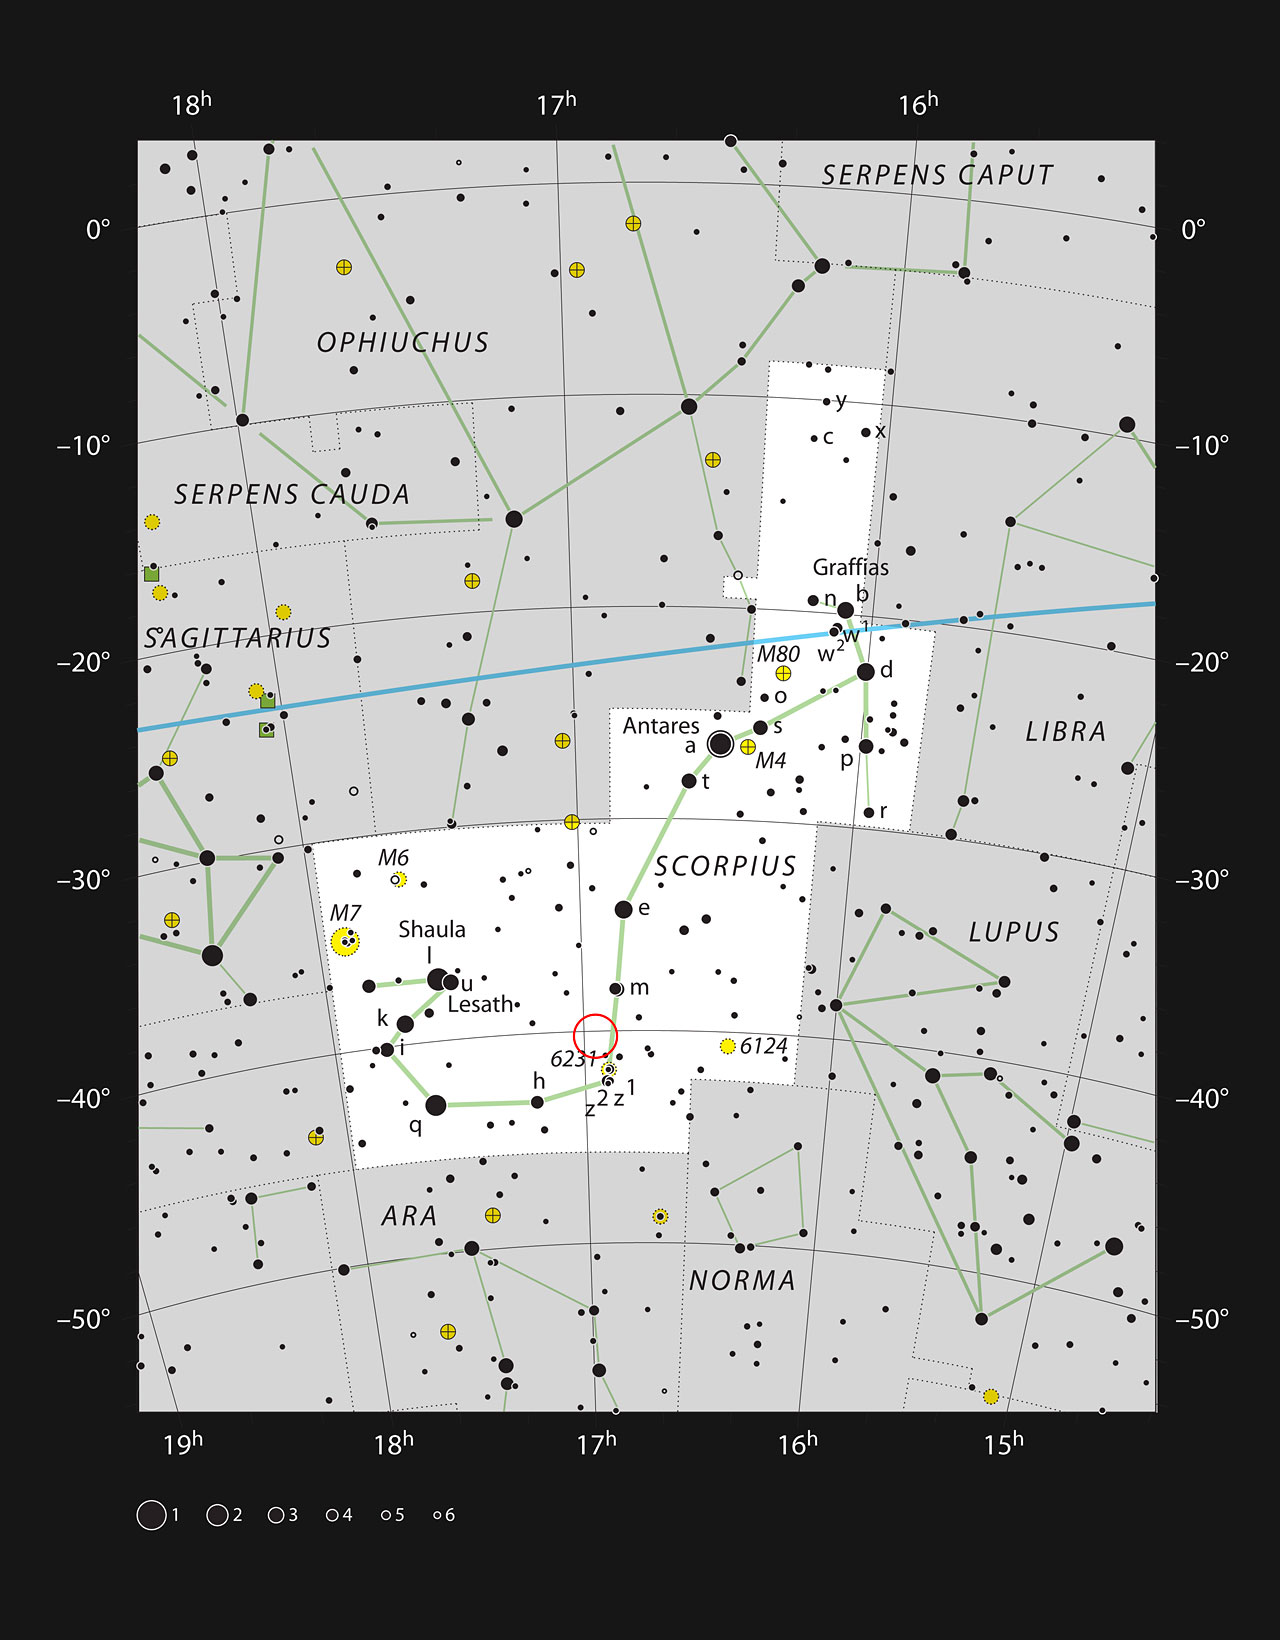 This chart shows the prominent constellation of Scorpius (The Scorpion). Most of the stars that can be seen in a dark sky with the unaided eye are marked. The location of the star formation region called the Prawn Nebula (IC 4628) is indicated with a red circle. This cloud appears large but is very faint and cannot be seen visually with a small telescope.